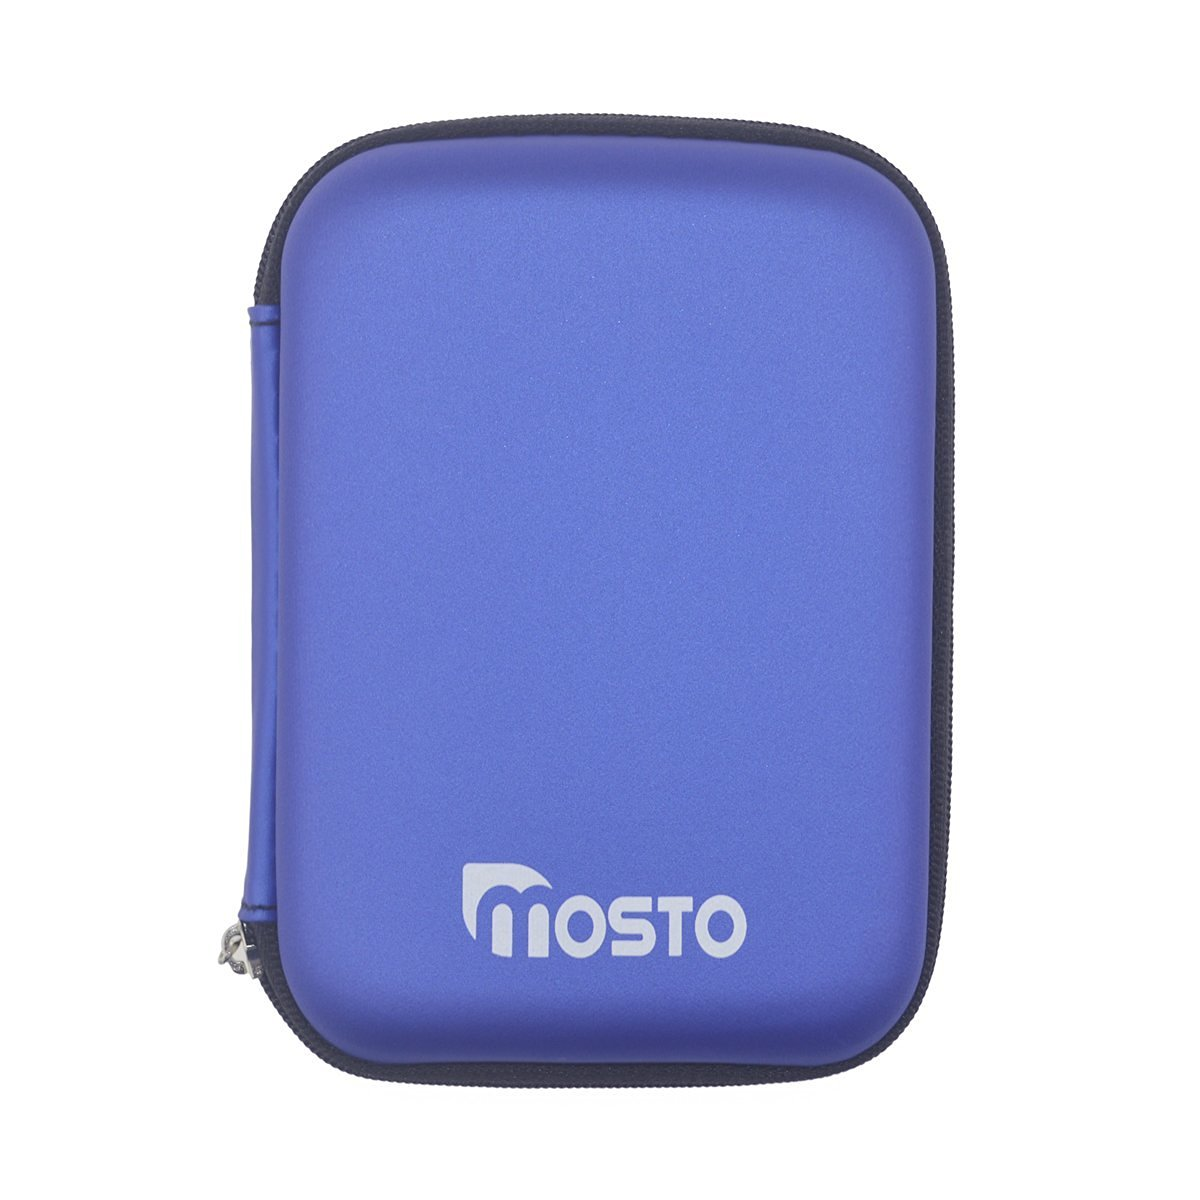 Mosto 2.5 Inch Portable External Hard Disk Drive HDD Carrying PU Travel Case Pouch Cover With Shockproof Waterproof(Blue)